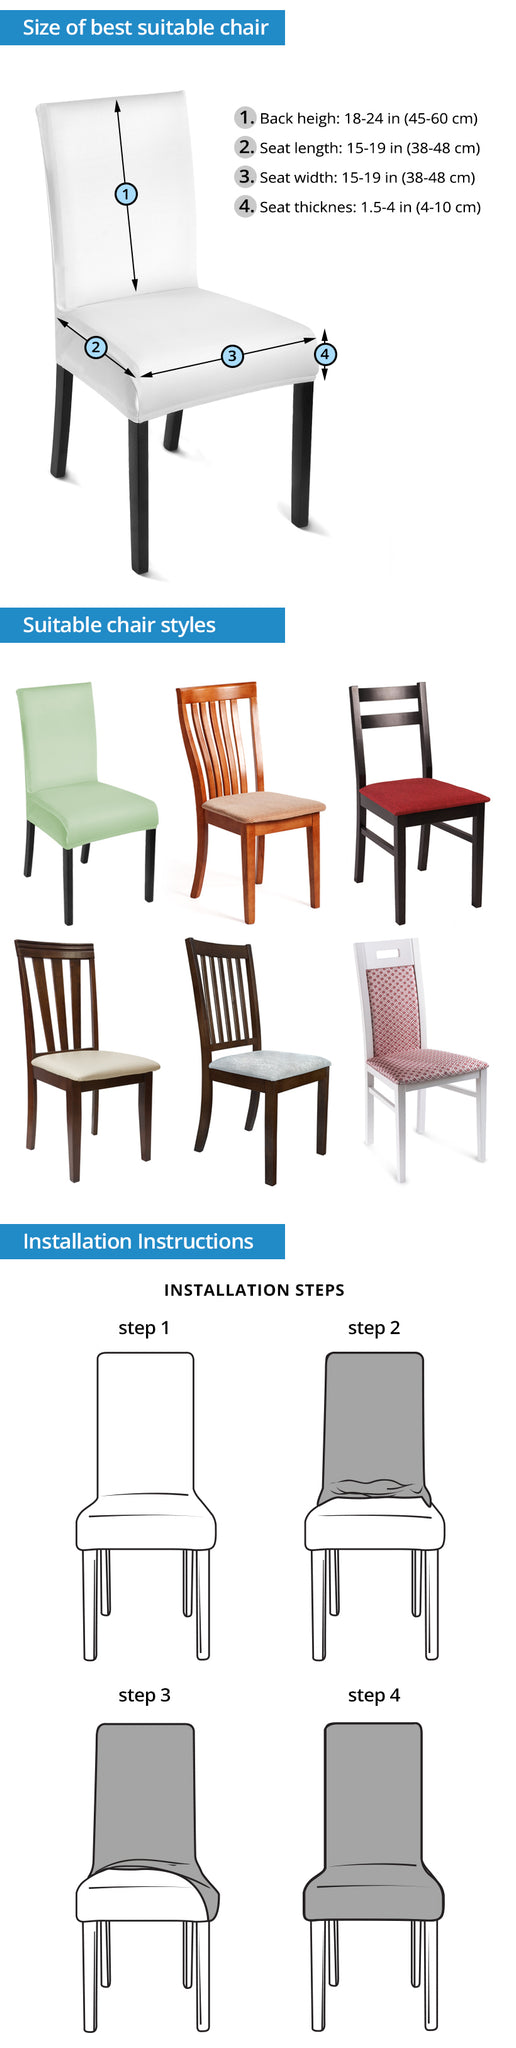 Chair Slip Cover Instructions